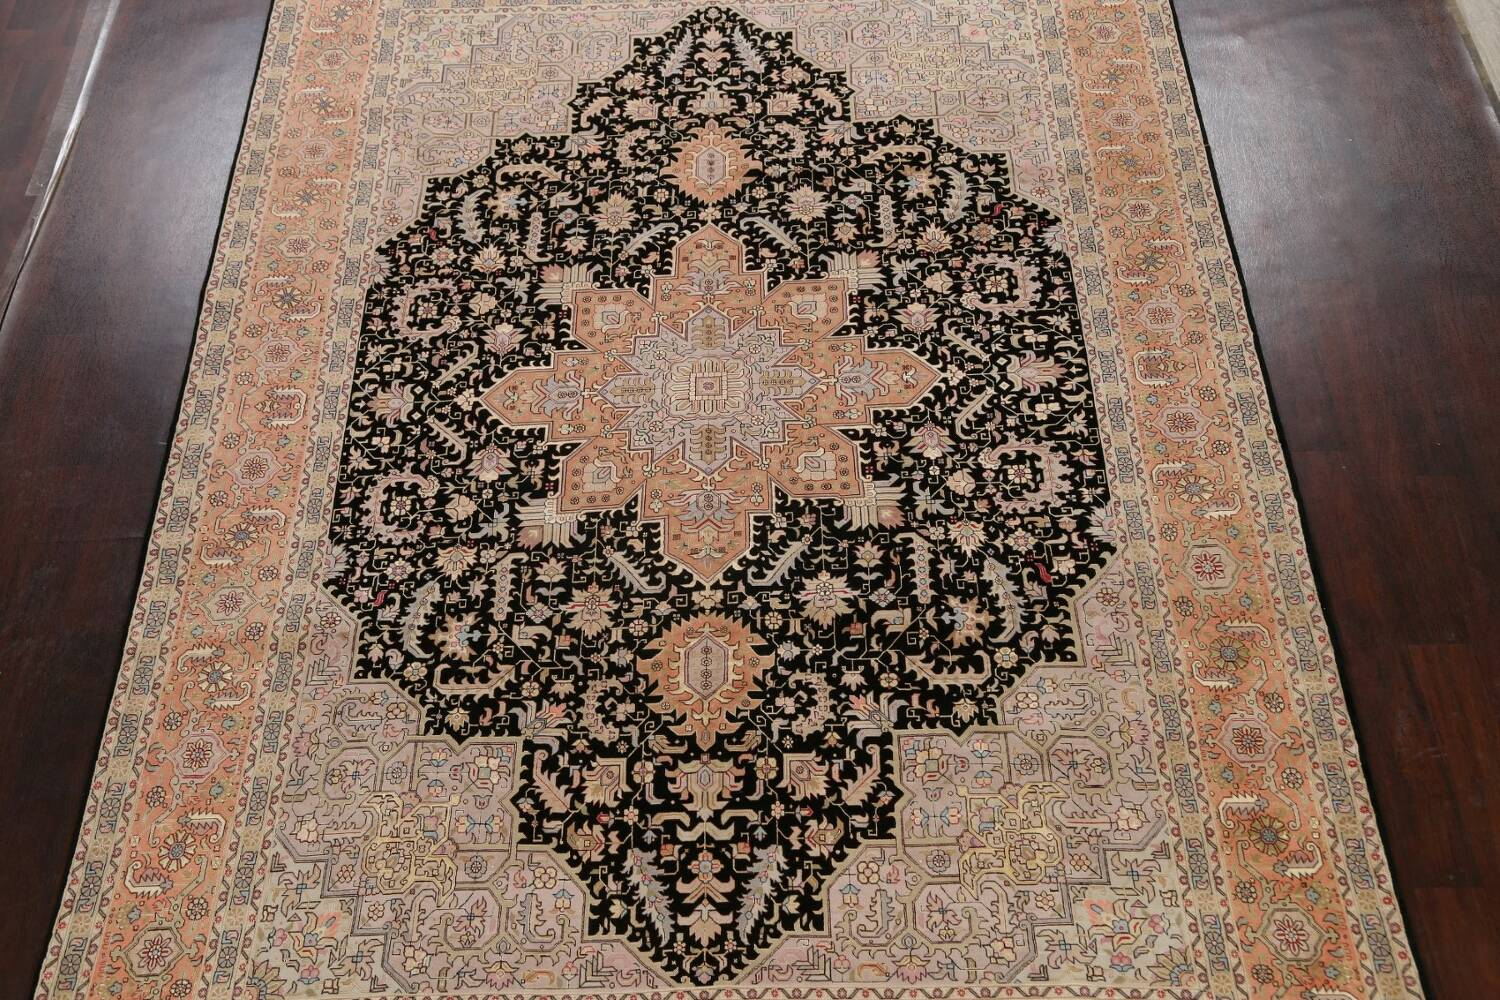 100% Vegetable Dye Tabriz Signed Persian Area Rug 8x12 image 3